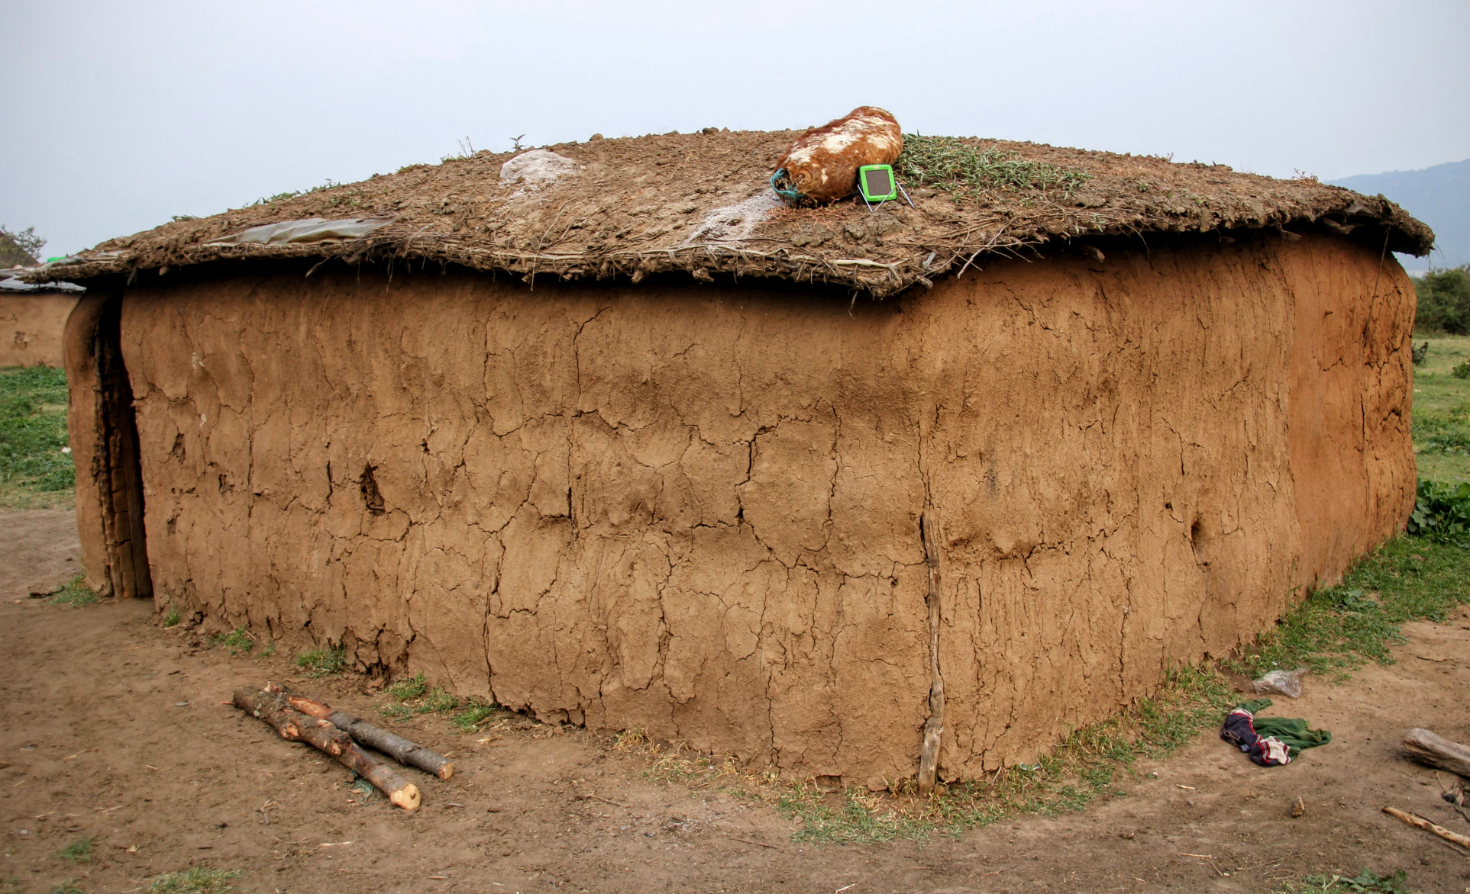 A solar cell-phone charger on the roof of a Masai village home, next to a decoy of a calf used to keep cows lactating